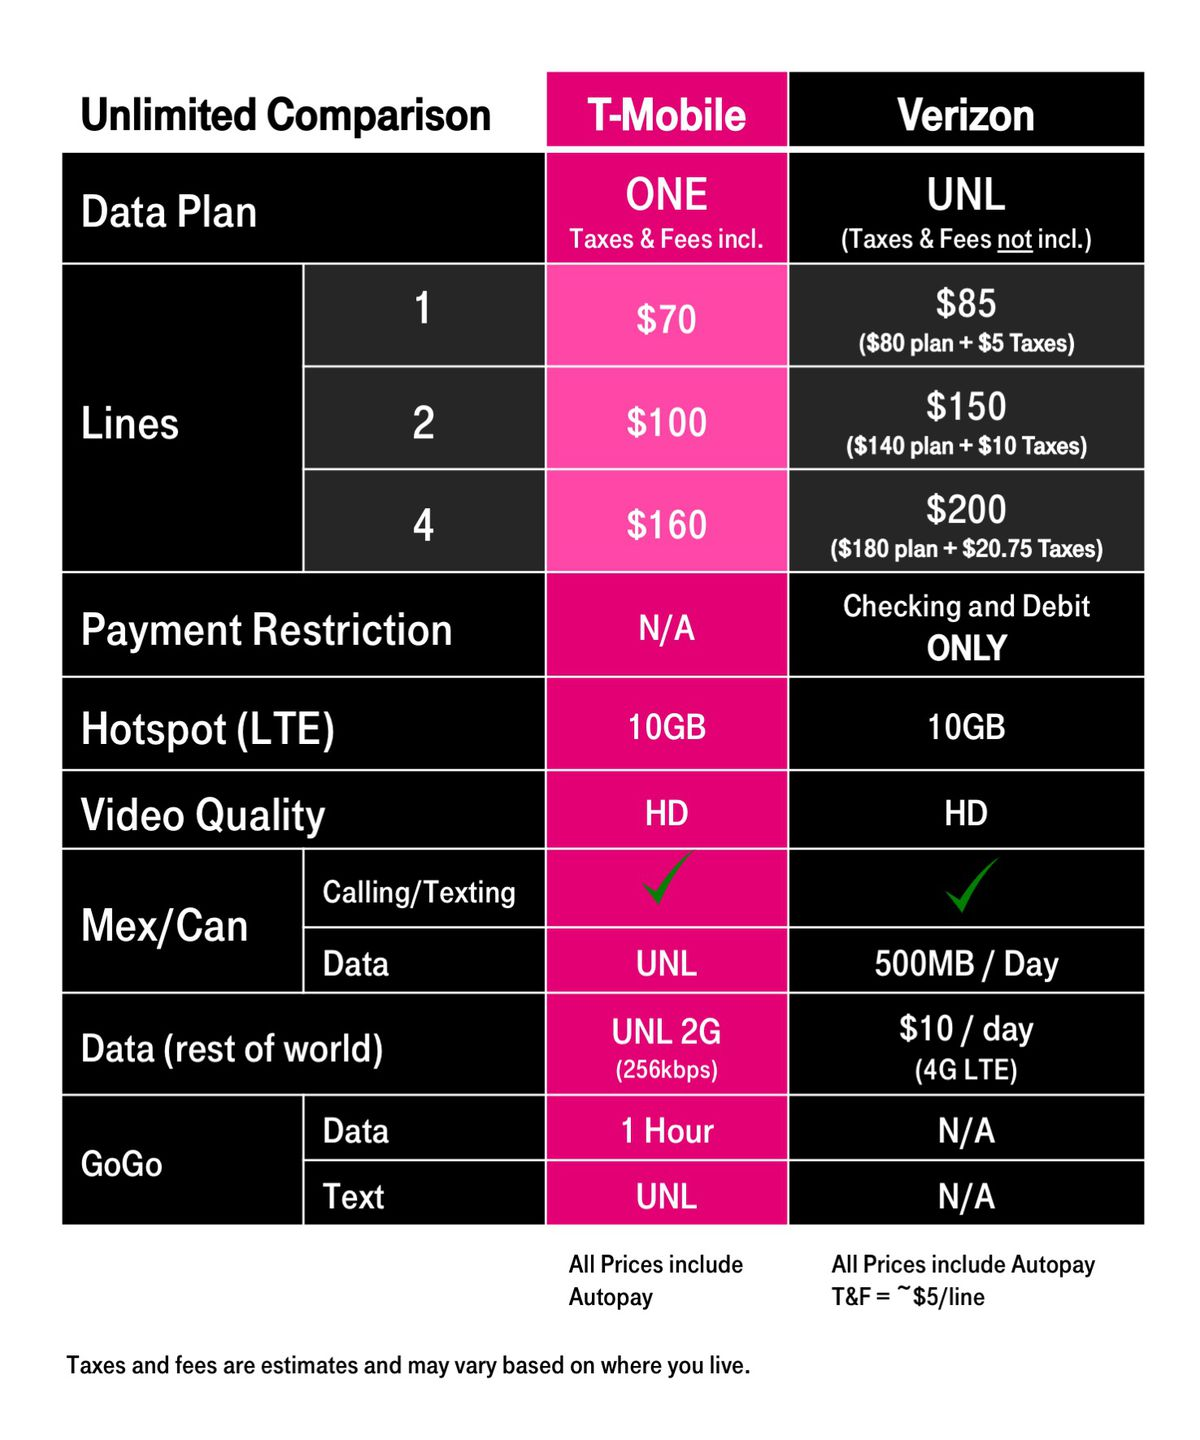 T-Mobile responds to Verizon by improving its own unlimited